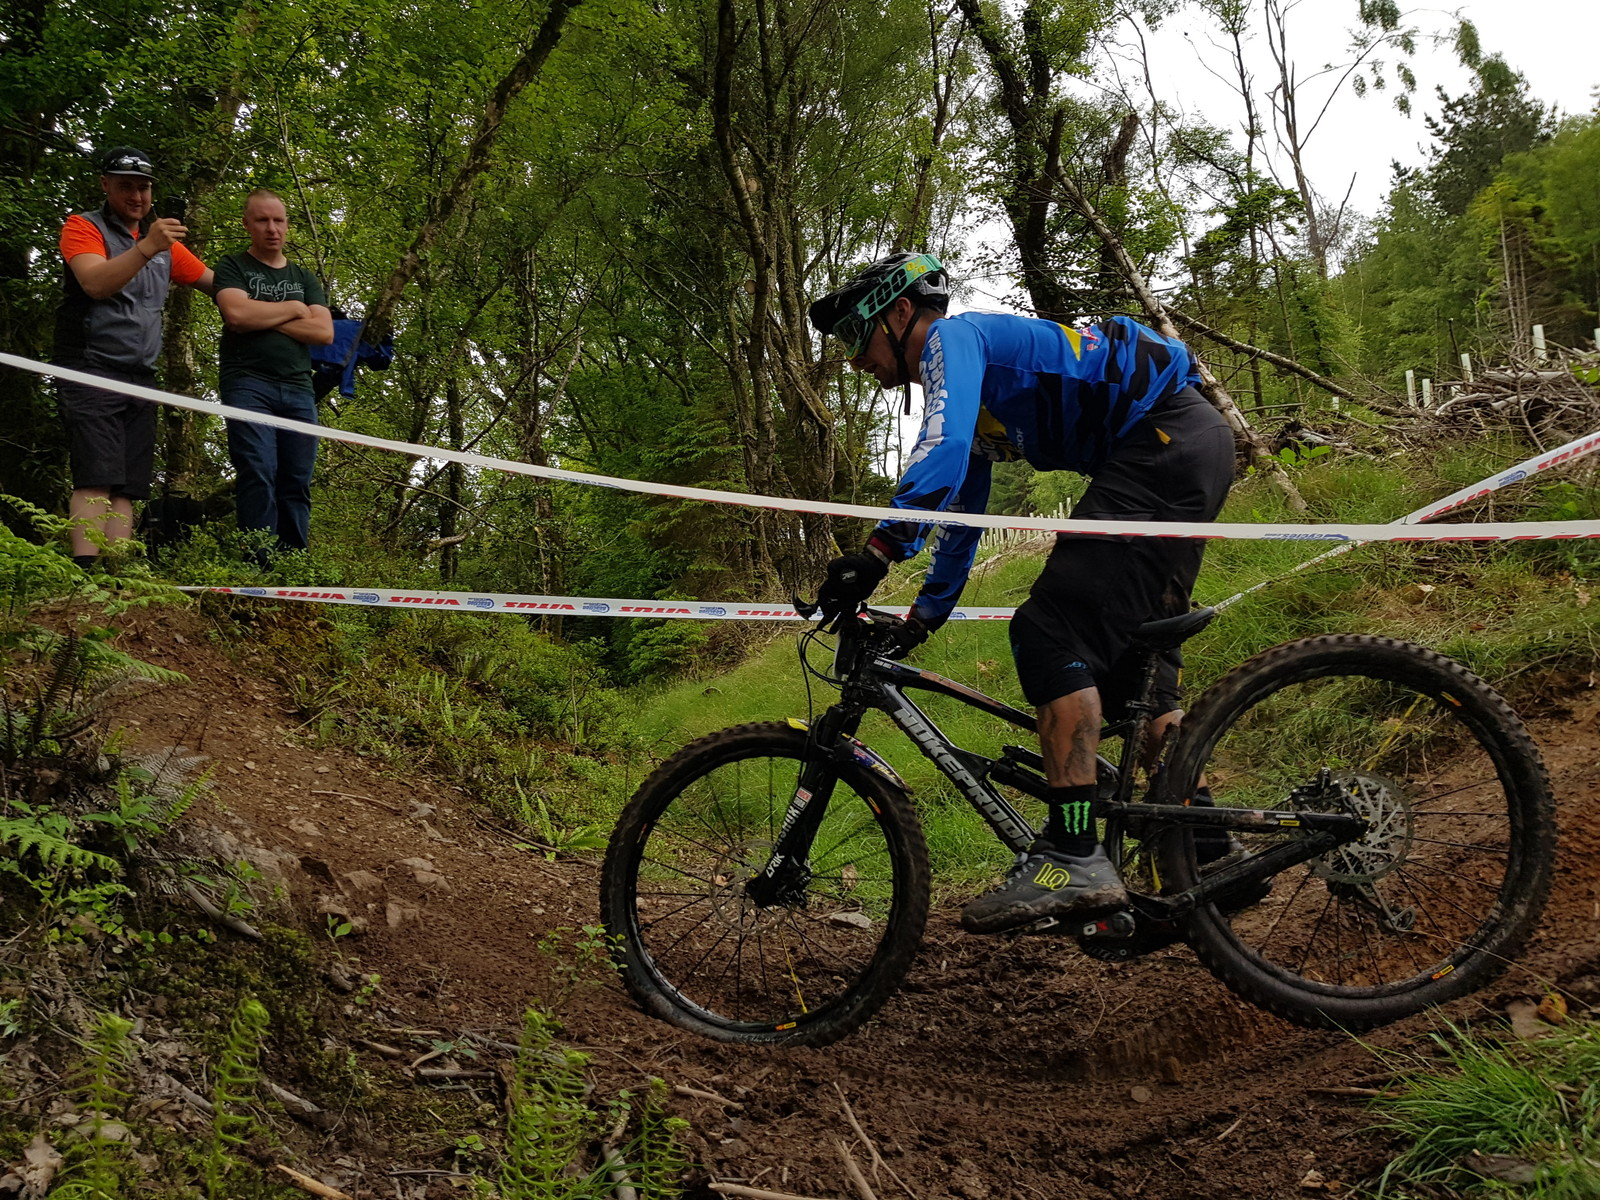 Sam Hill's Nukeproof Mega Carbon G-ed Out - G-out Project: EWS Ireland 2017 - Mountain Biking Pictures - Vital MTB